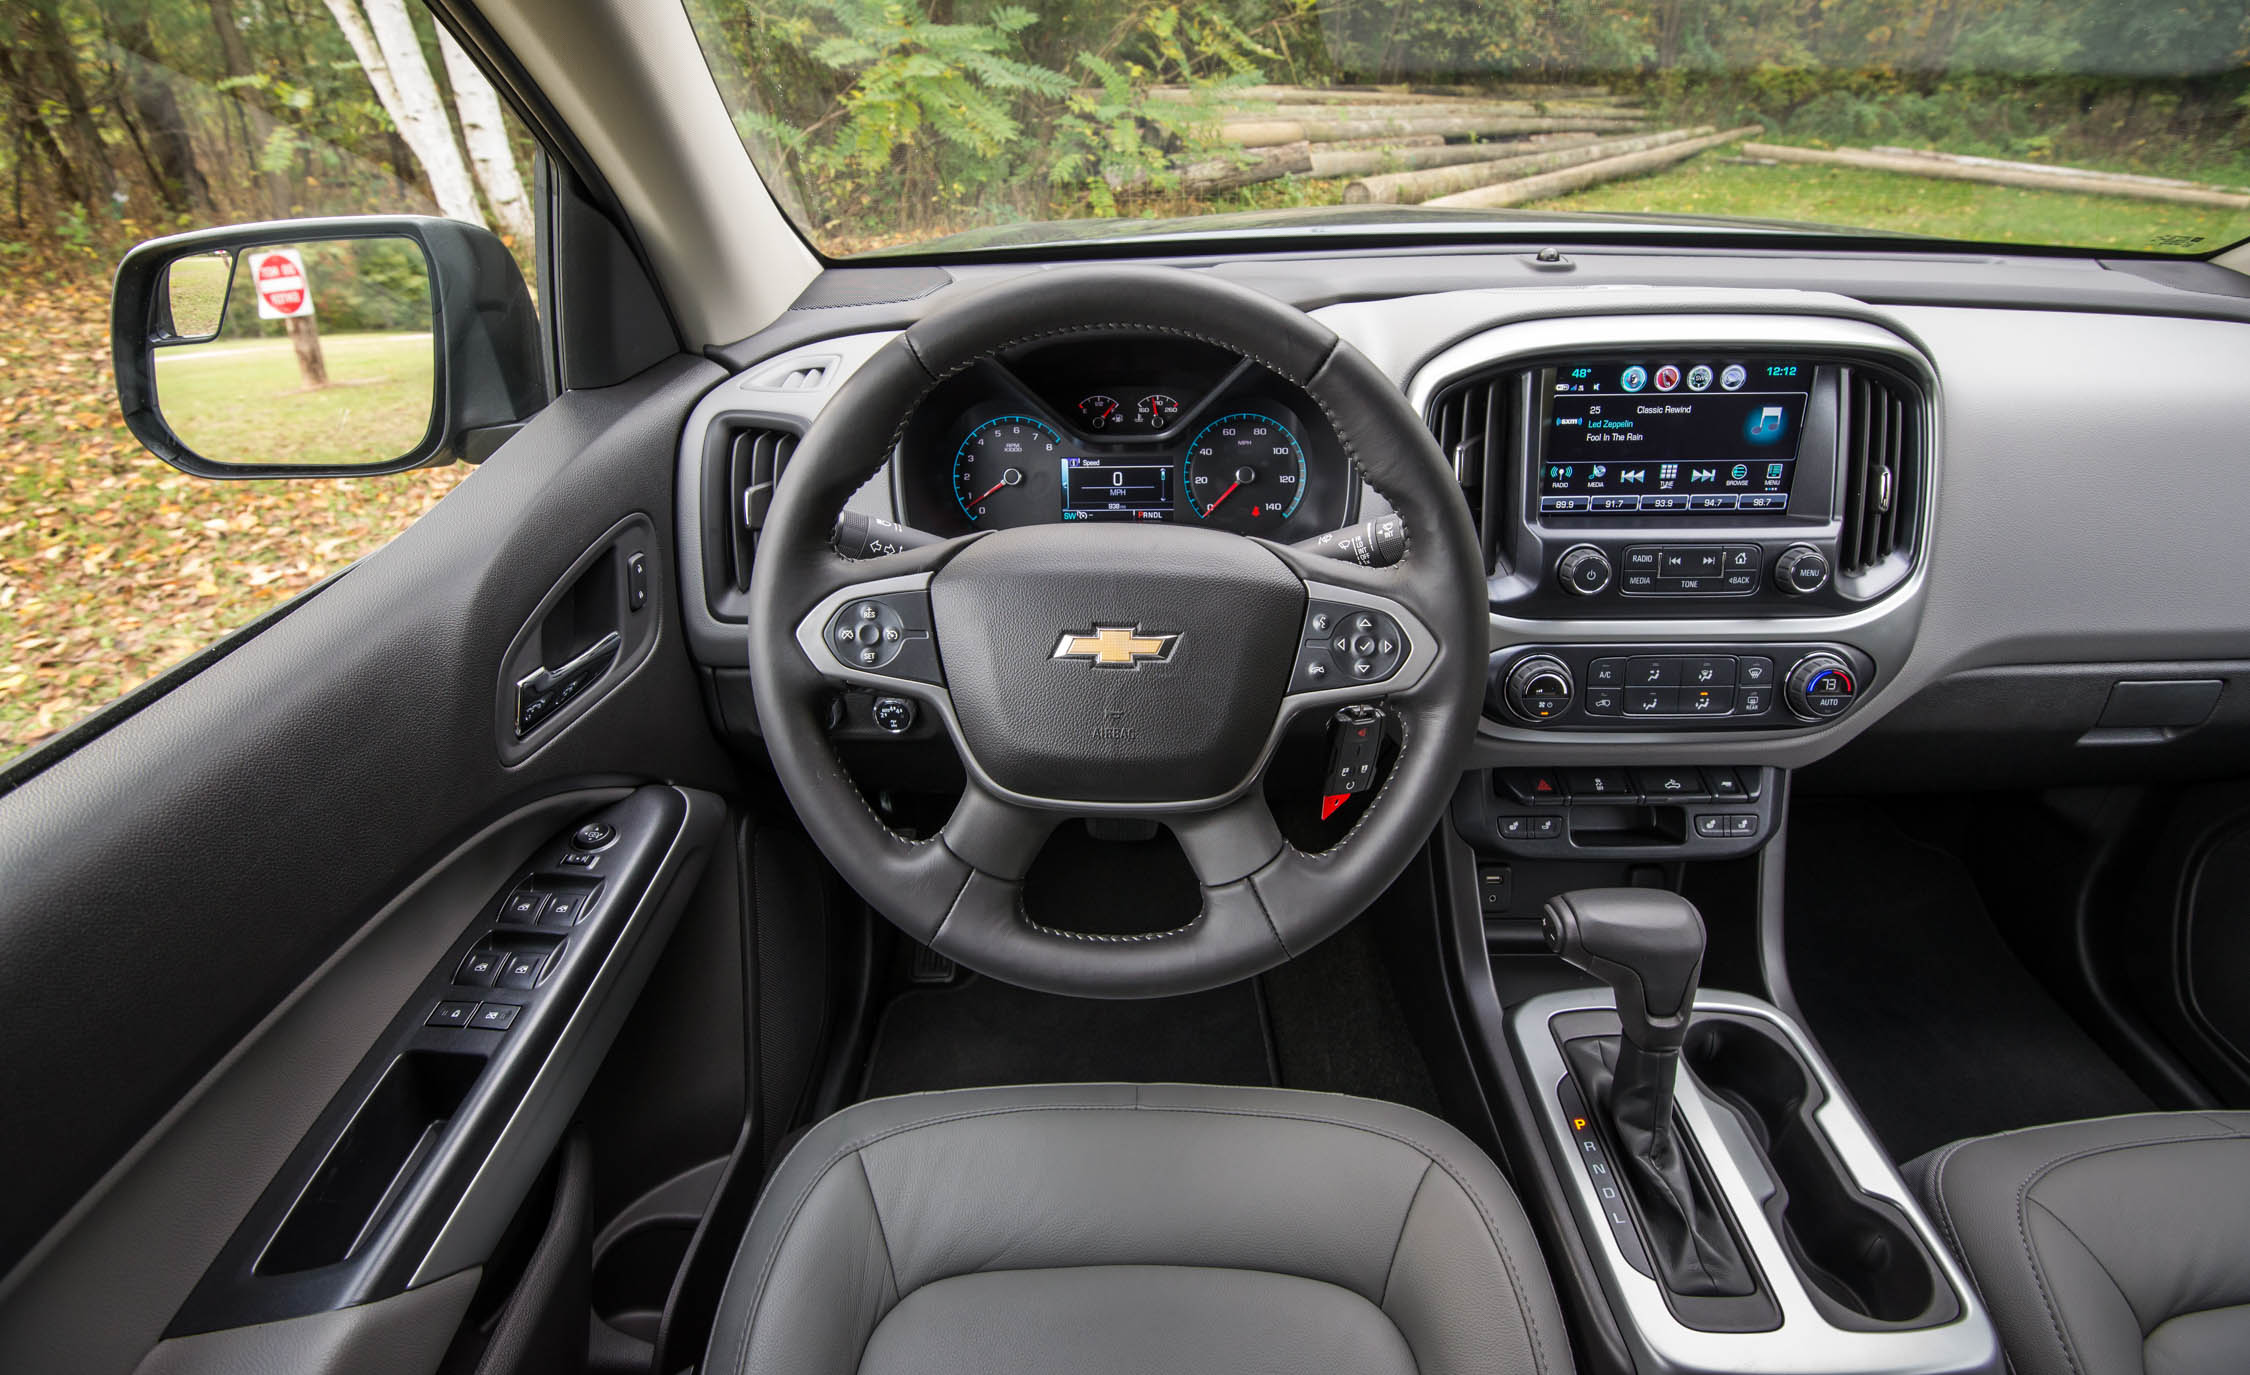 2017 Chevrolet Colorado LT Interior Steering And Dash (Photo 36 of 41)